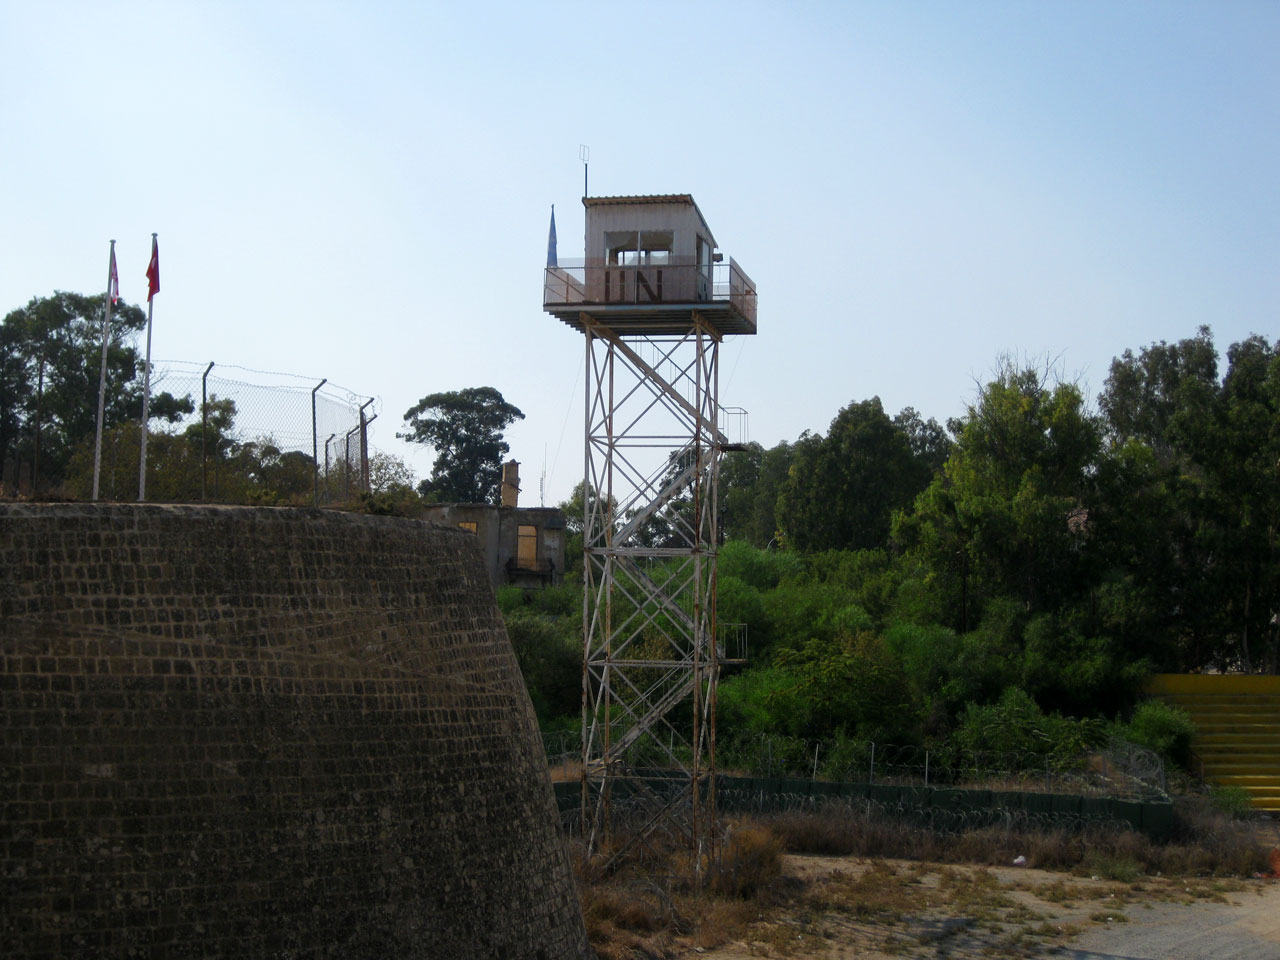 UN watchtower in Nicosia, Cyprus